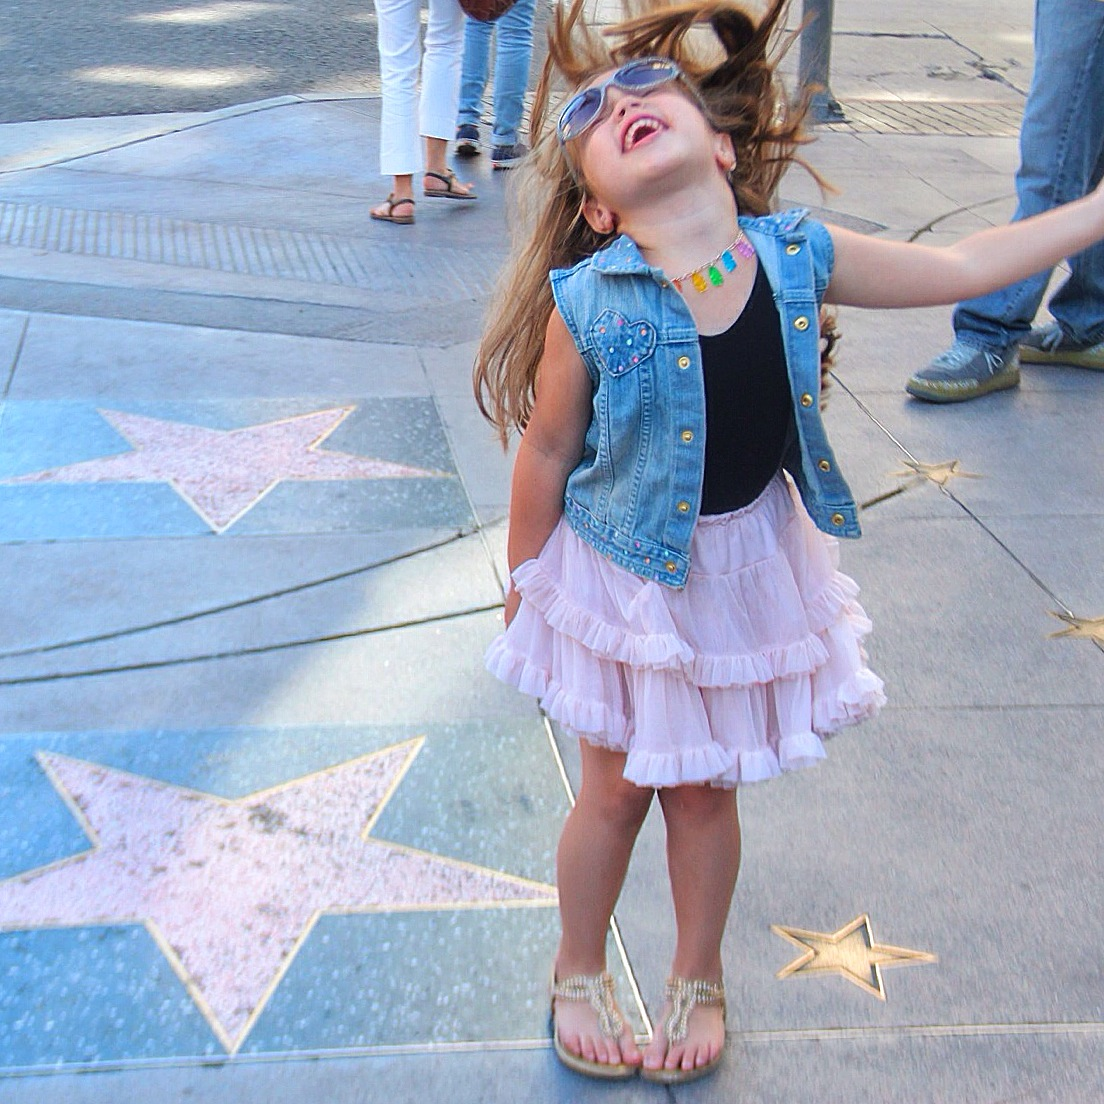 A little girl on the Hollywood walk of fame